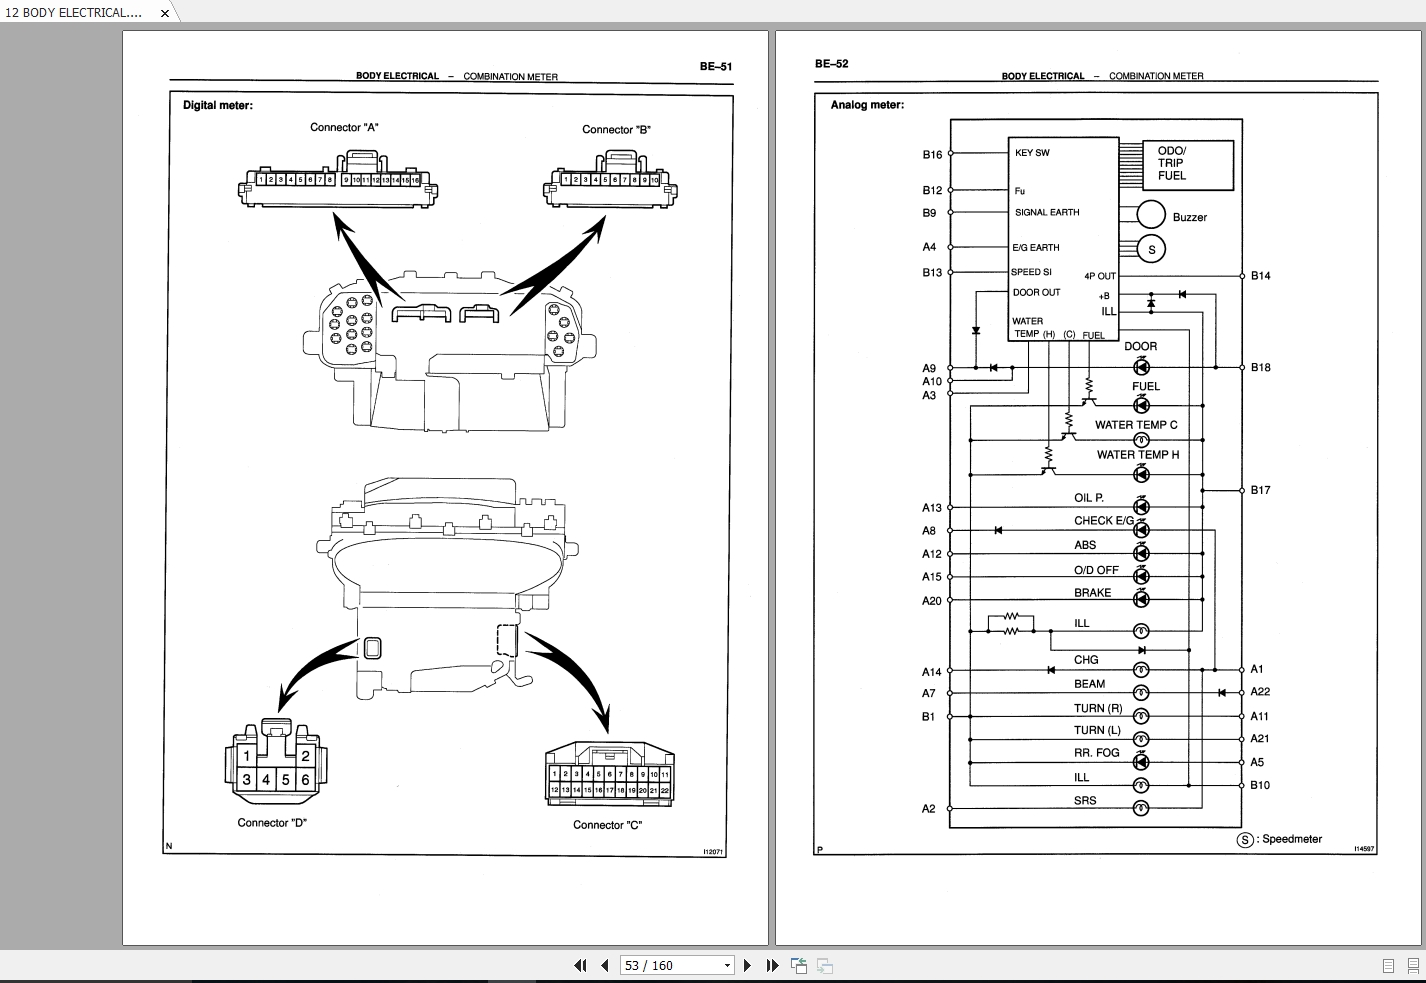 Toyota Yaris Electrical Wiring Diagram